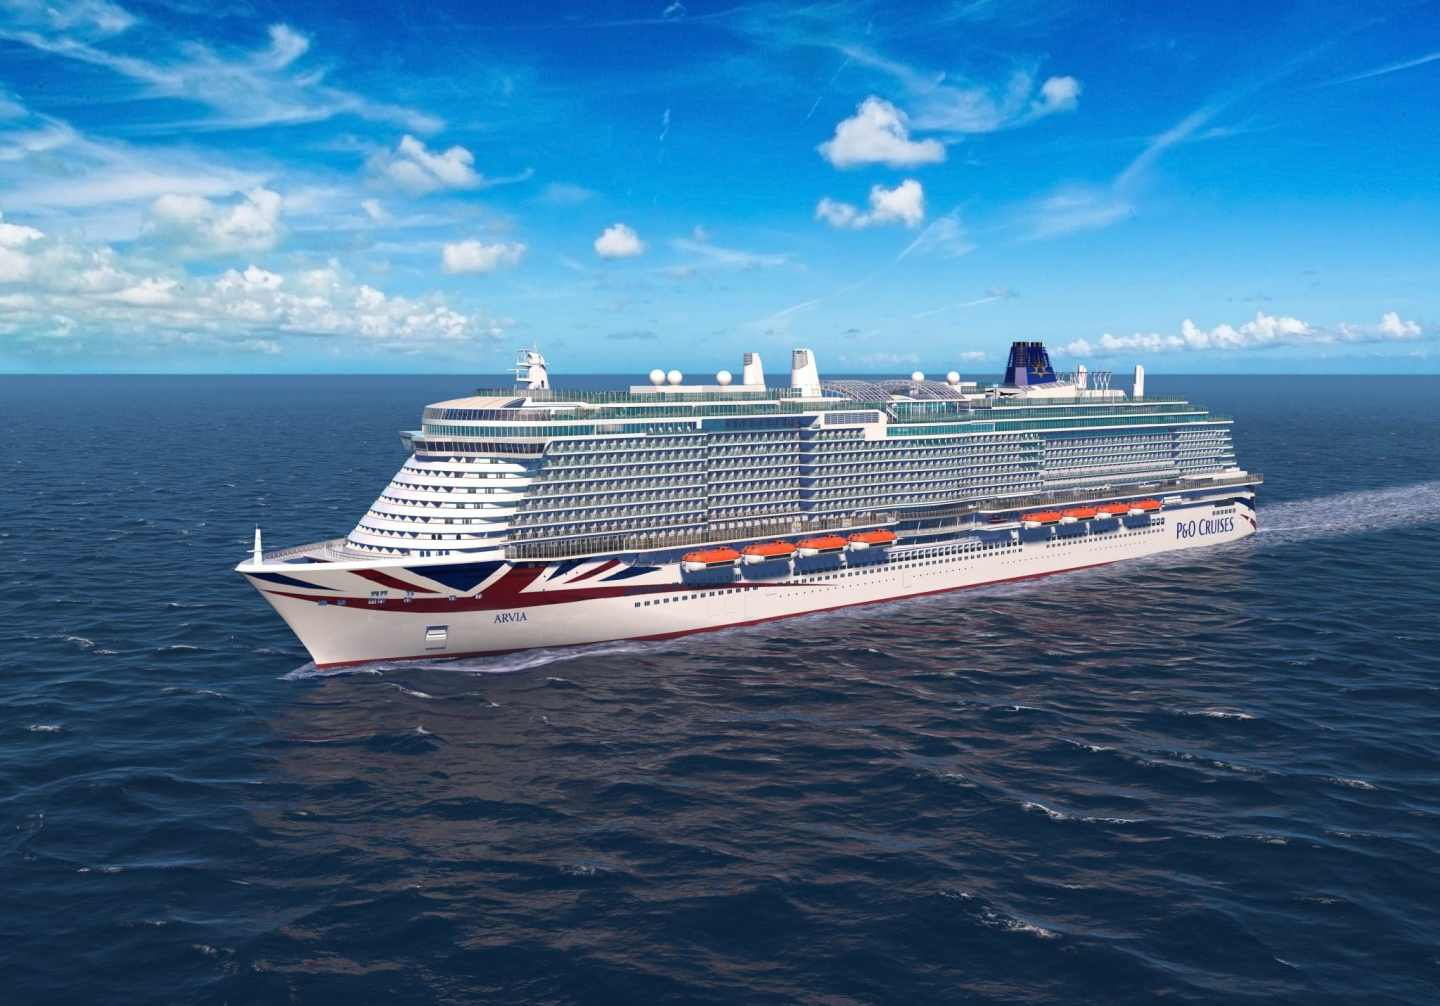 P&O Cruises ships by age Arvia is the newest